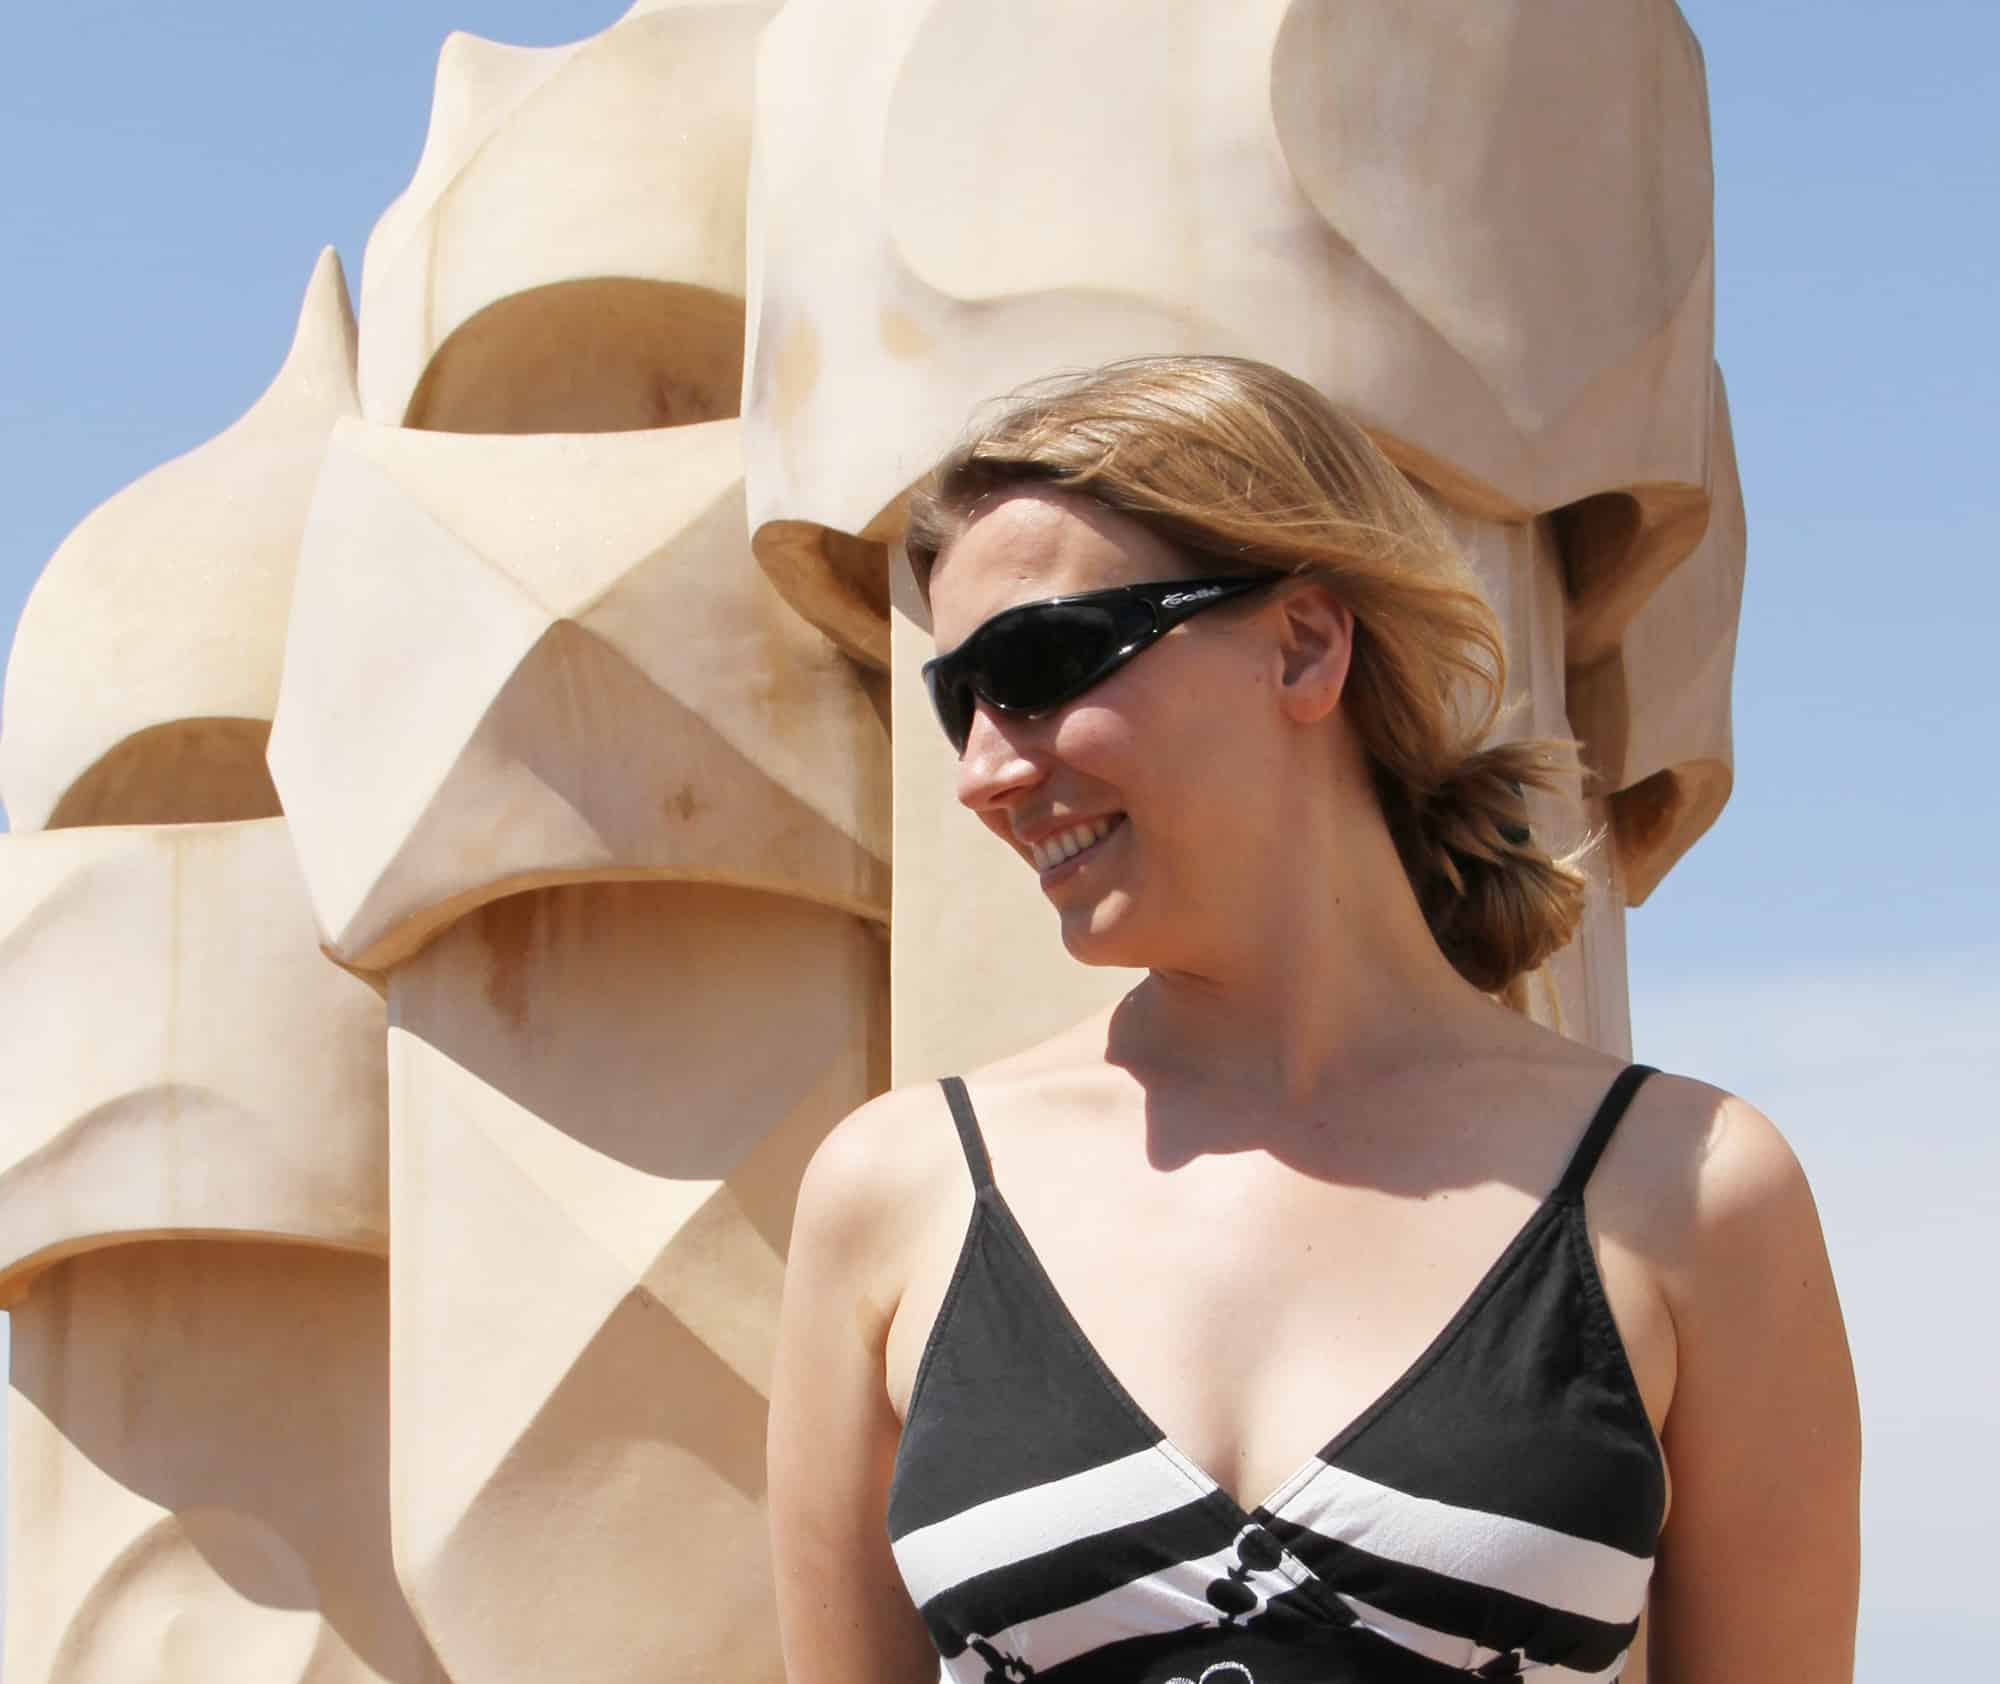 Abigail King in Barcelona at the Casa Mila